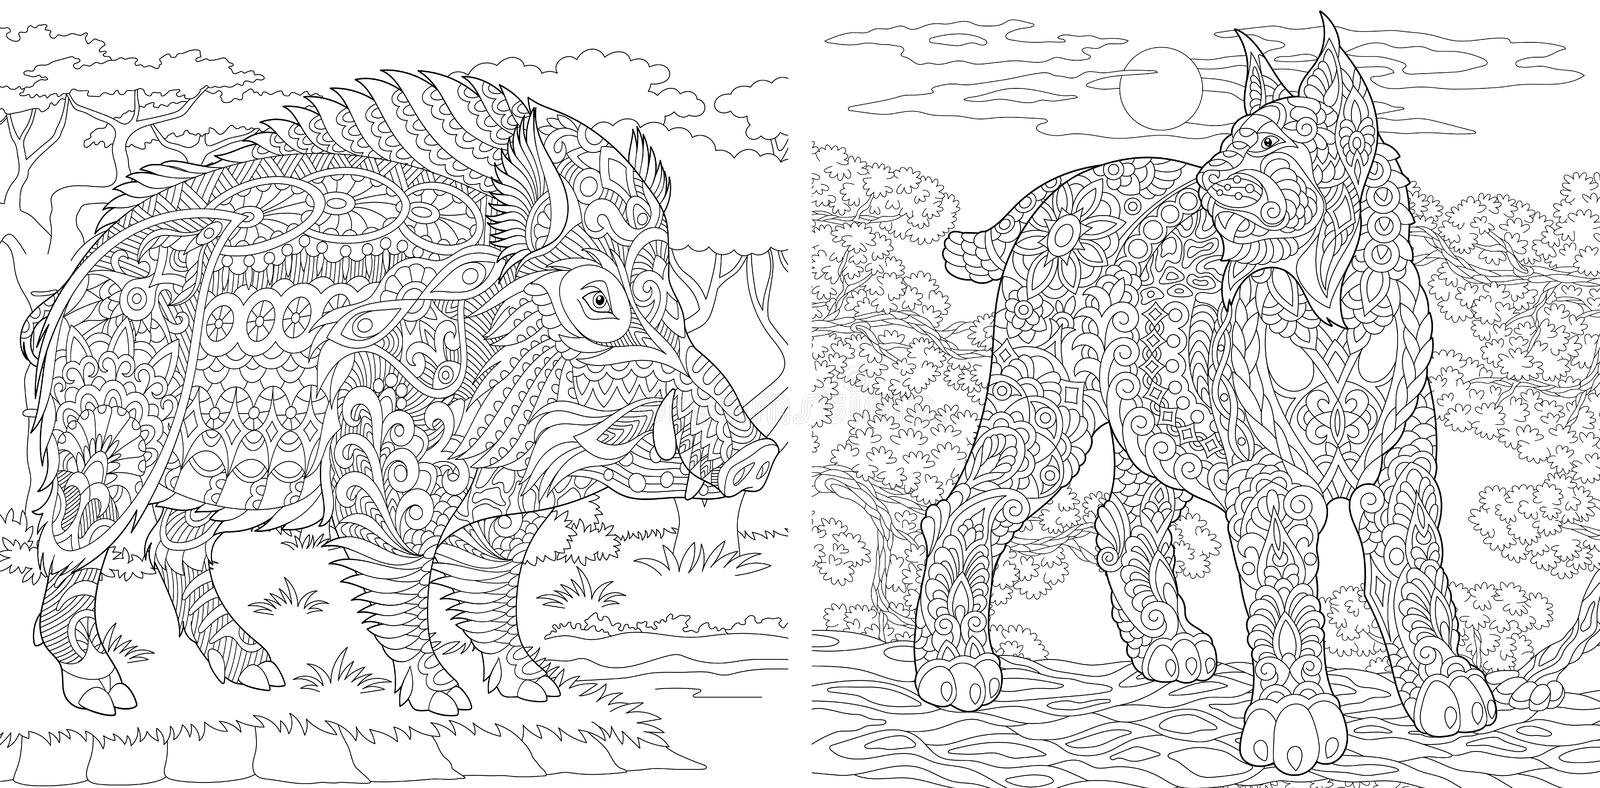 Coloring Pages. Coloring Book for adults. Colouring pictures with wildcat and wild boar. Antistress freehand sketch drawing with stock illustration